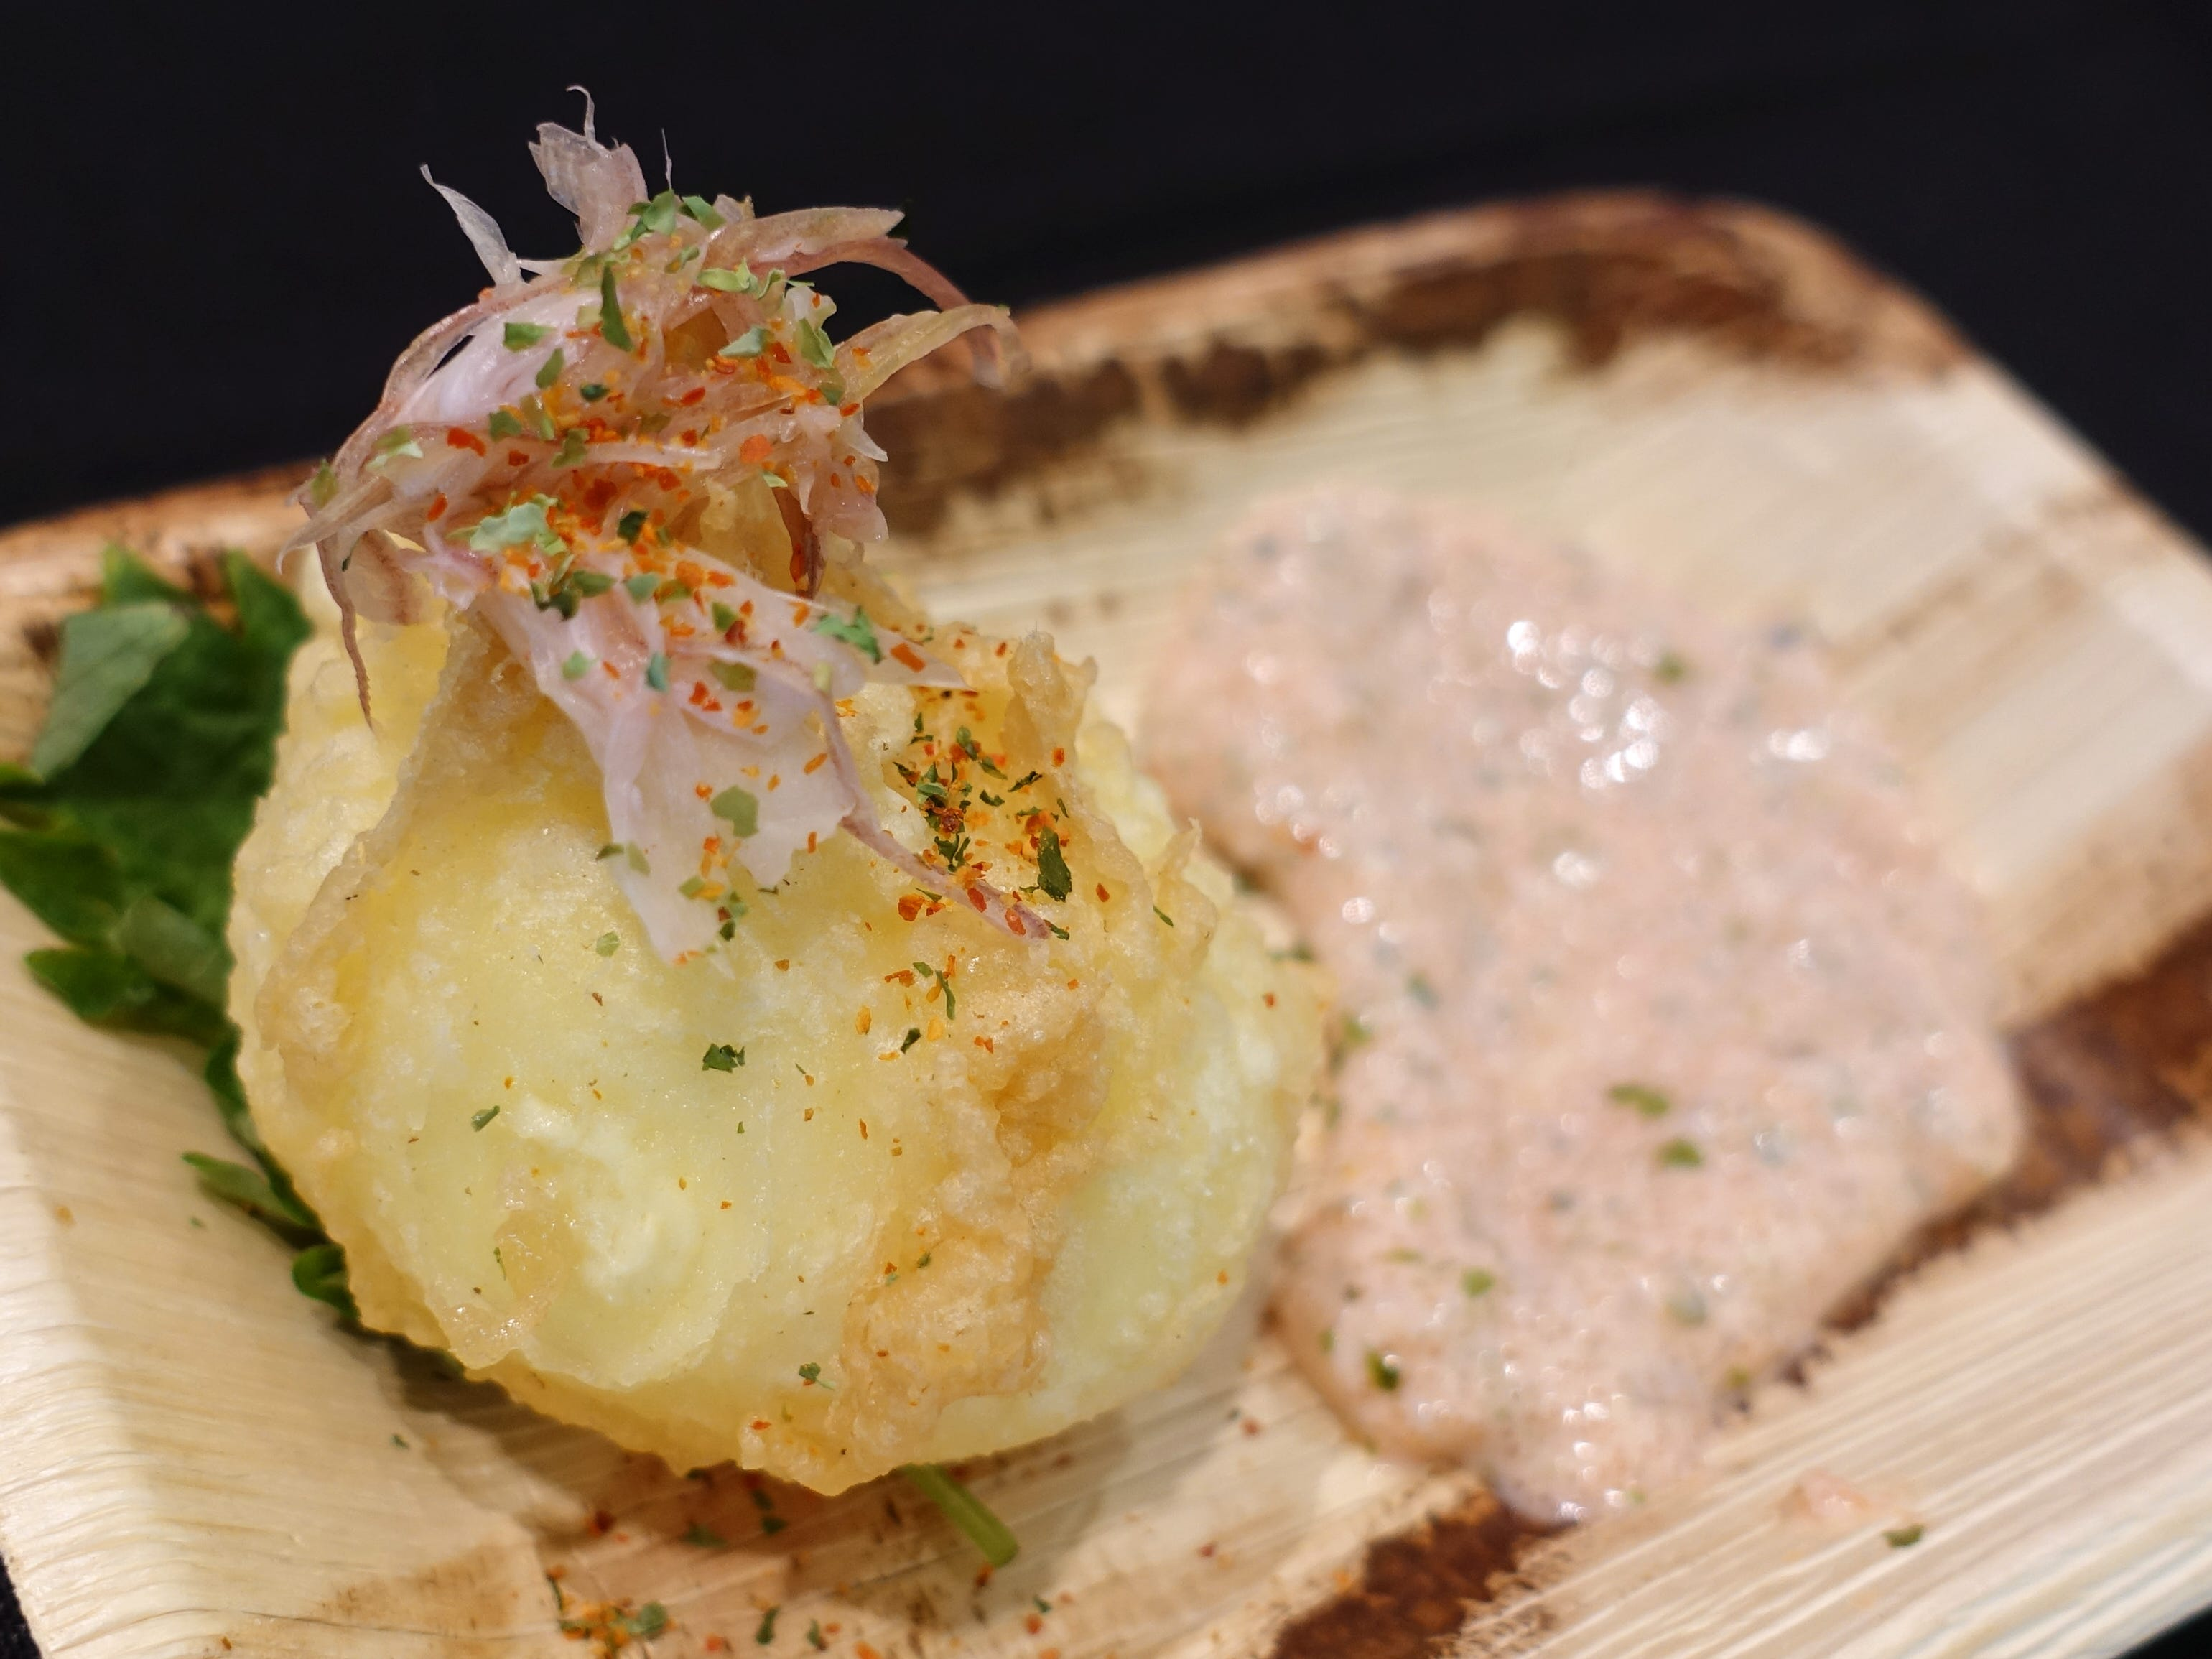 Hana Tamago with dashi brined soft-boiled egg, tempura fried, with mentaiko yogurt sauce and pickled myoga from Hana Japanese Eatery at the 2019 Devour Culinary Classic at the Desert Botanical Garden in Phoenix.